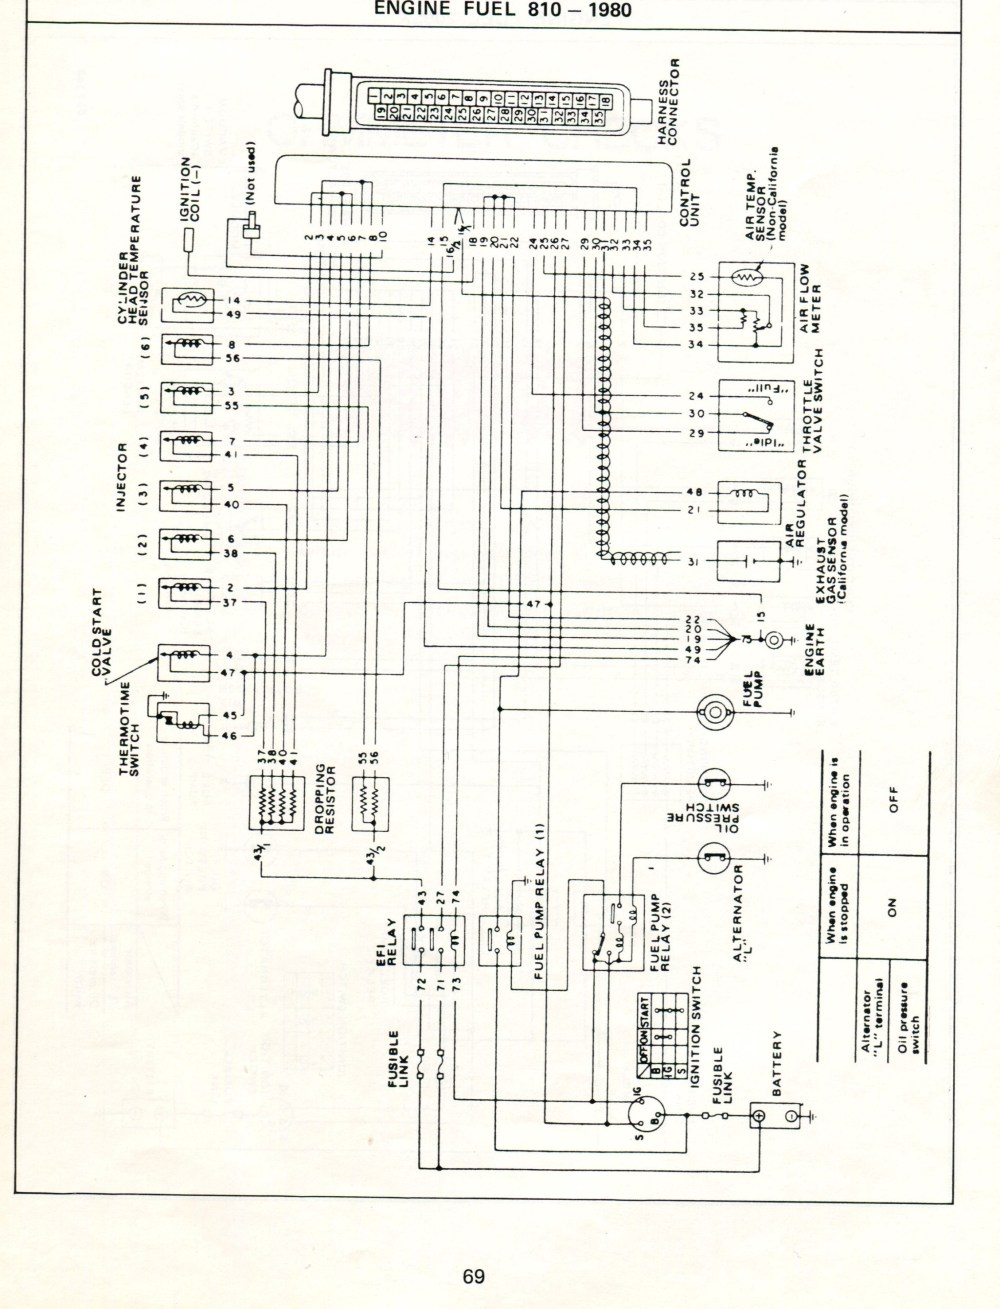 medium resolution of electronic fuel injection wiring diagram